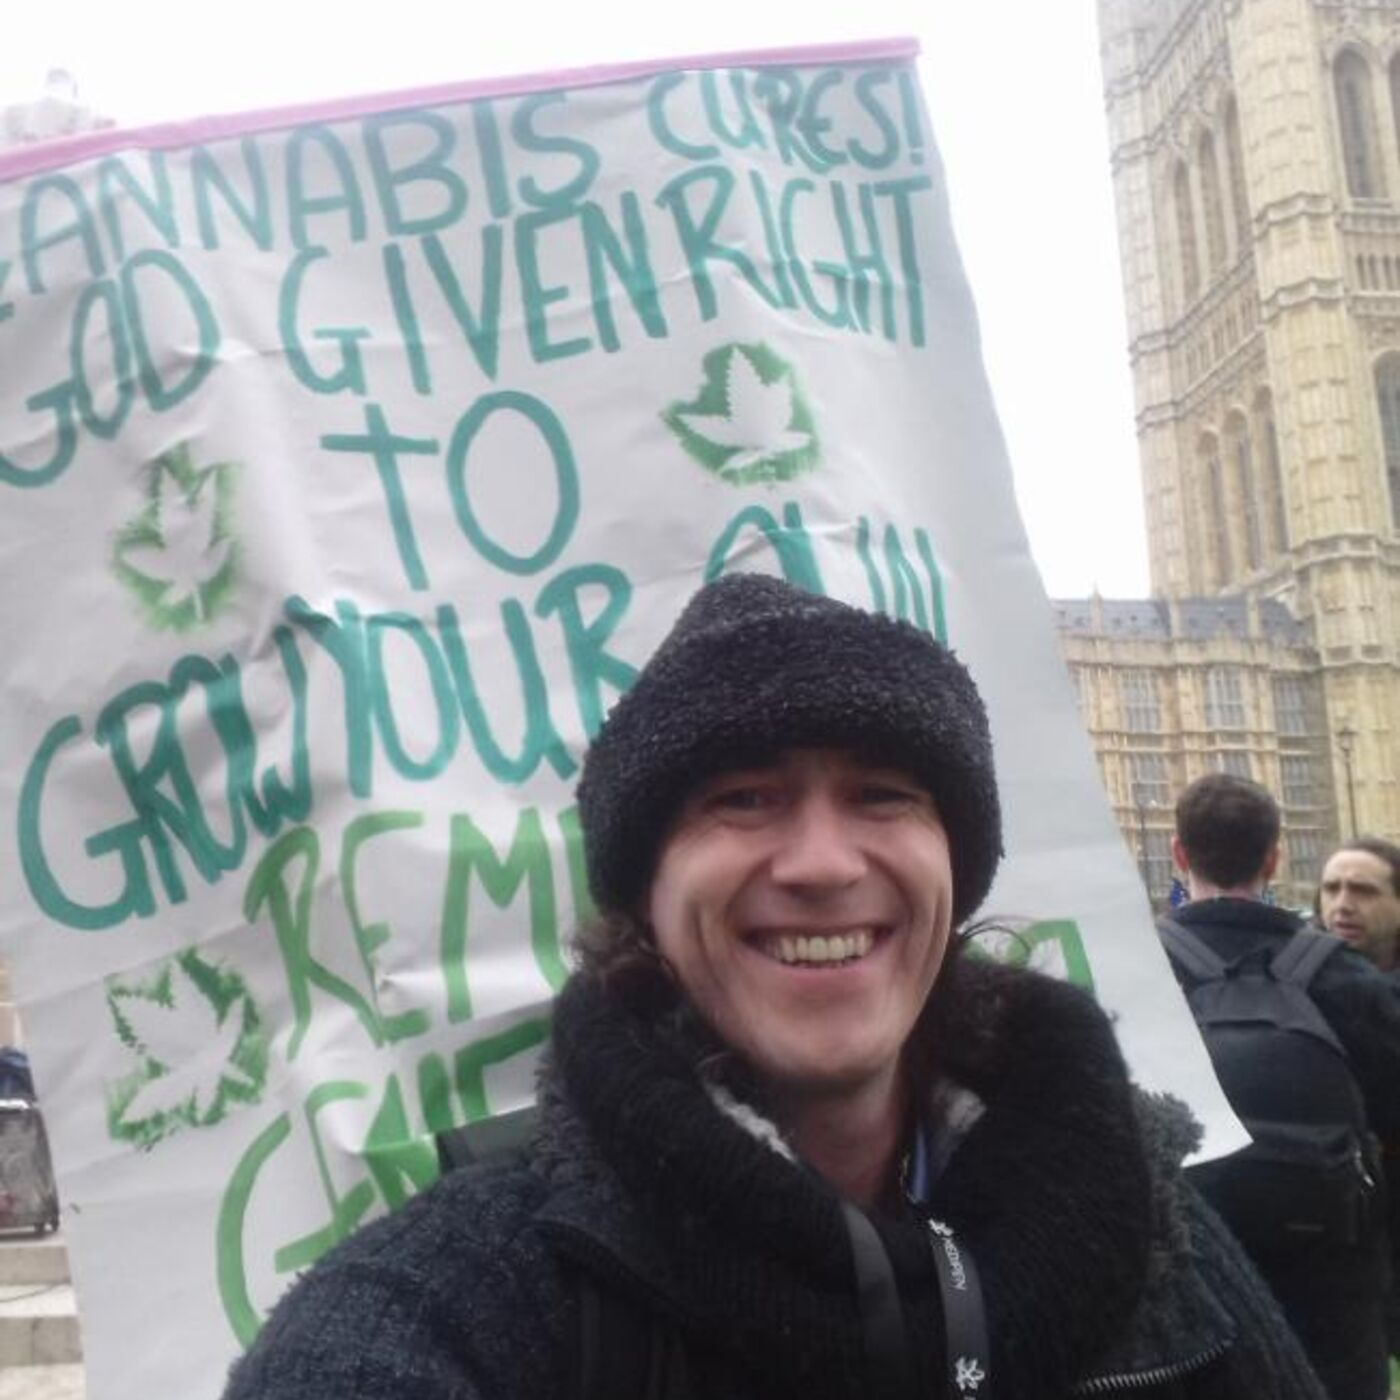 Phil Monk - a sovereign human right to cannabis